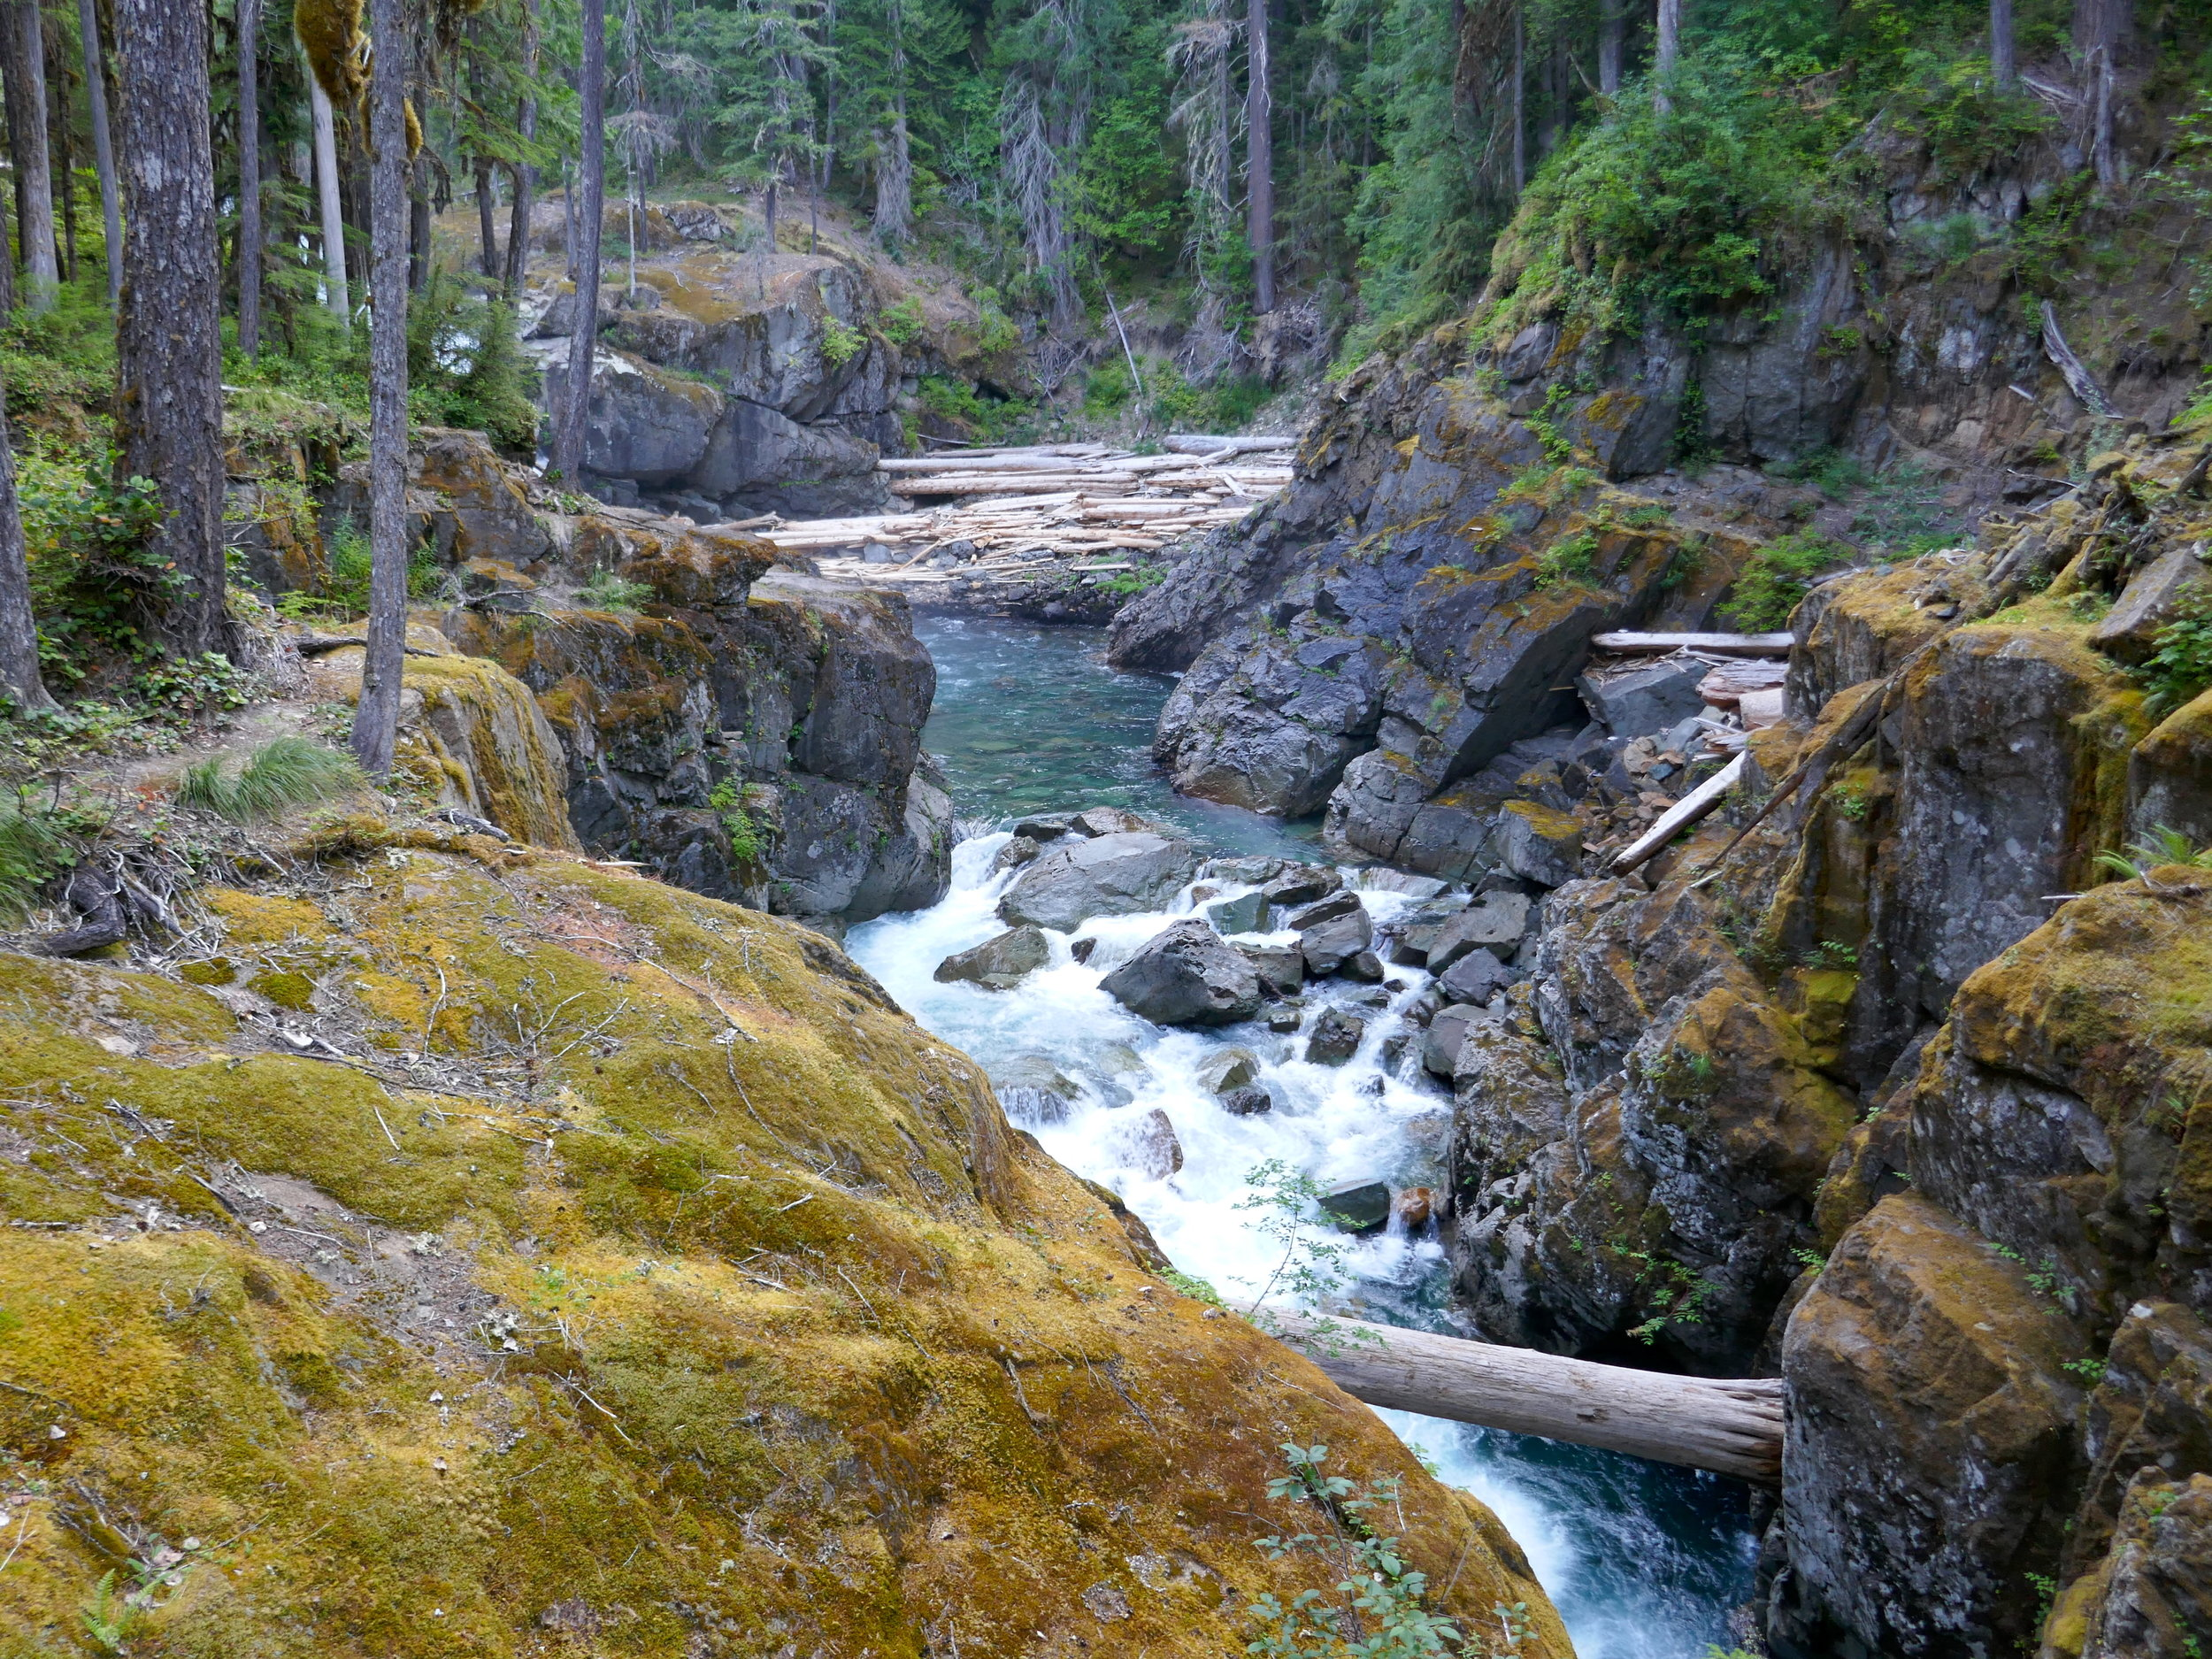 Silver Falls trail, part of the East Eastern Loop